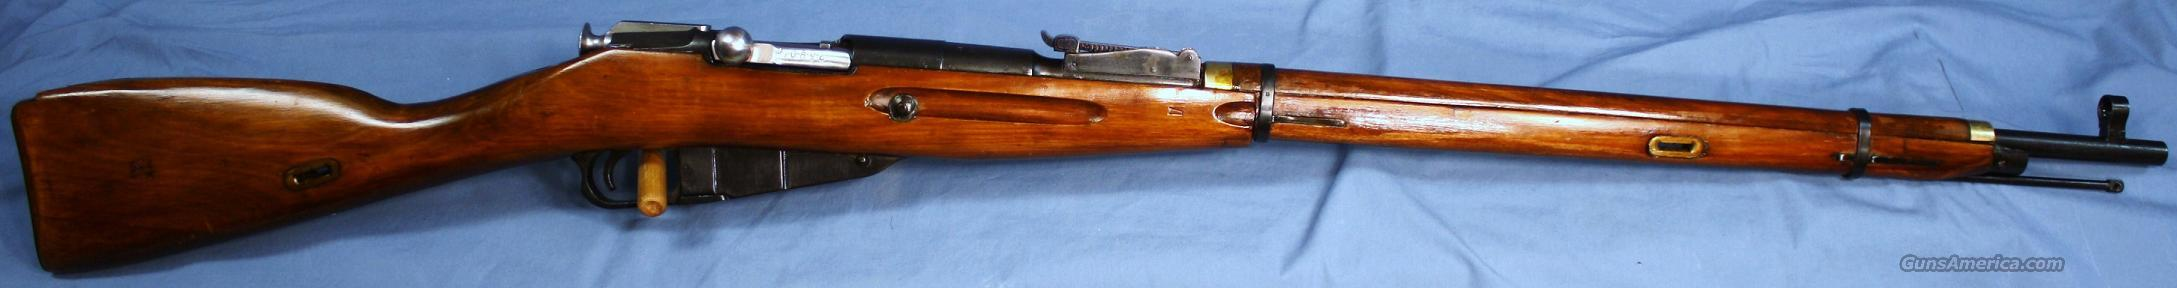 Mosin-Nagant 1891/30 Soviet Army Bolt Action Rifle 7.62x54R Izhevsk 1937  Guns > Rifles > Mosin-Nagant Rifles/Carbines